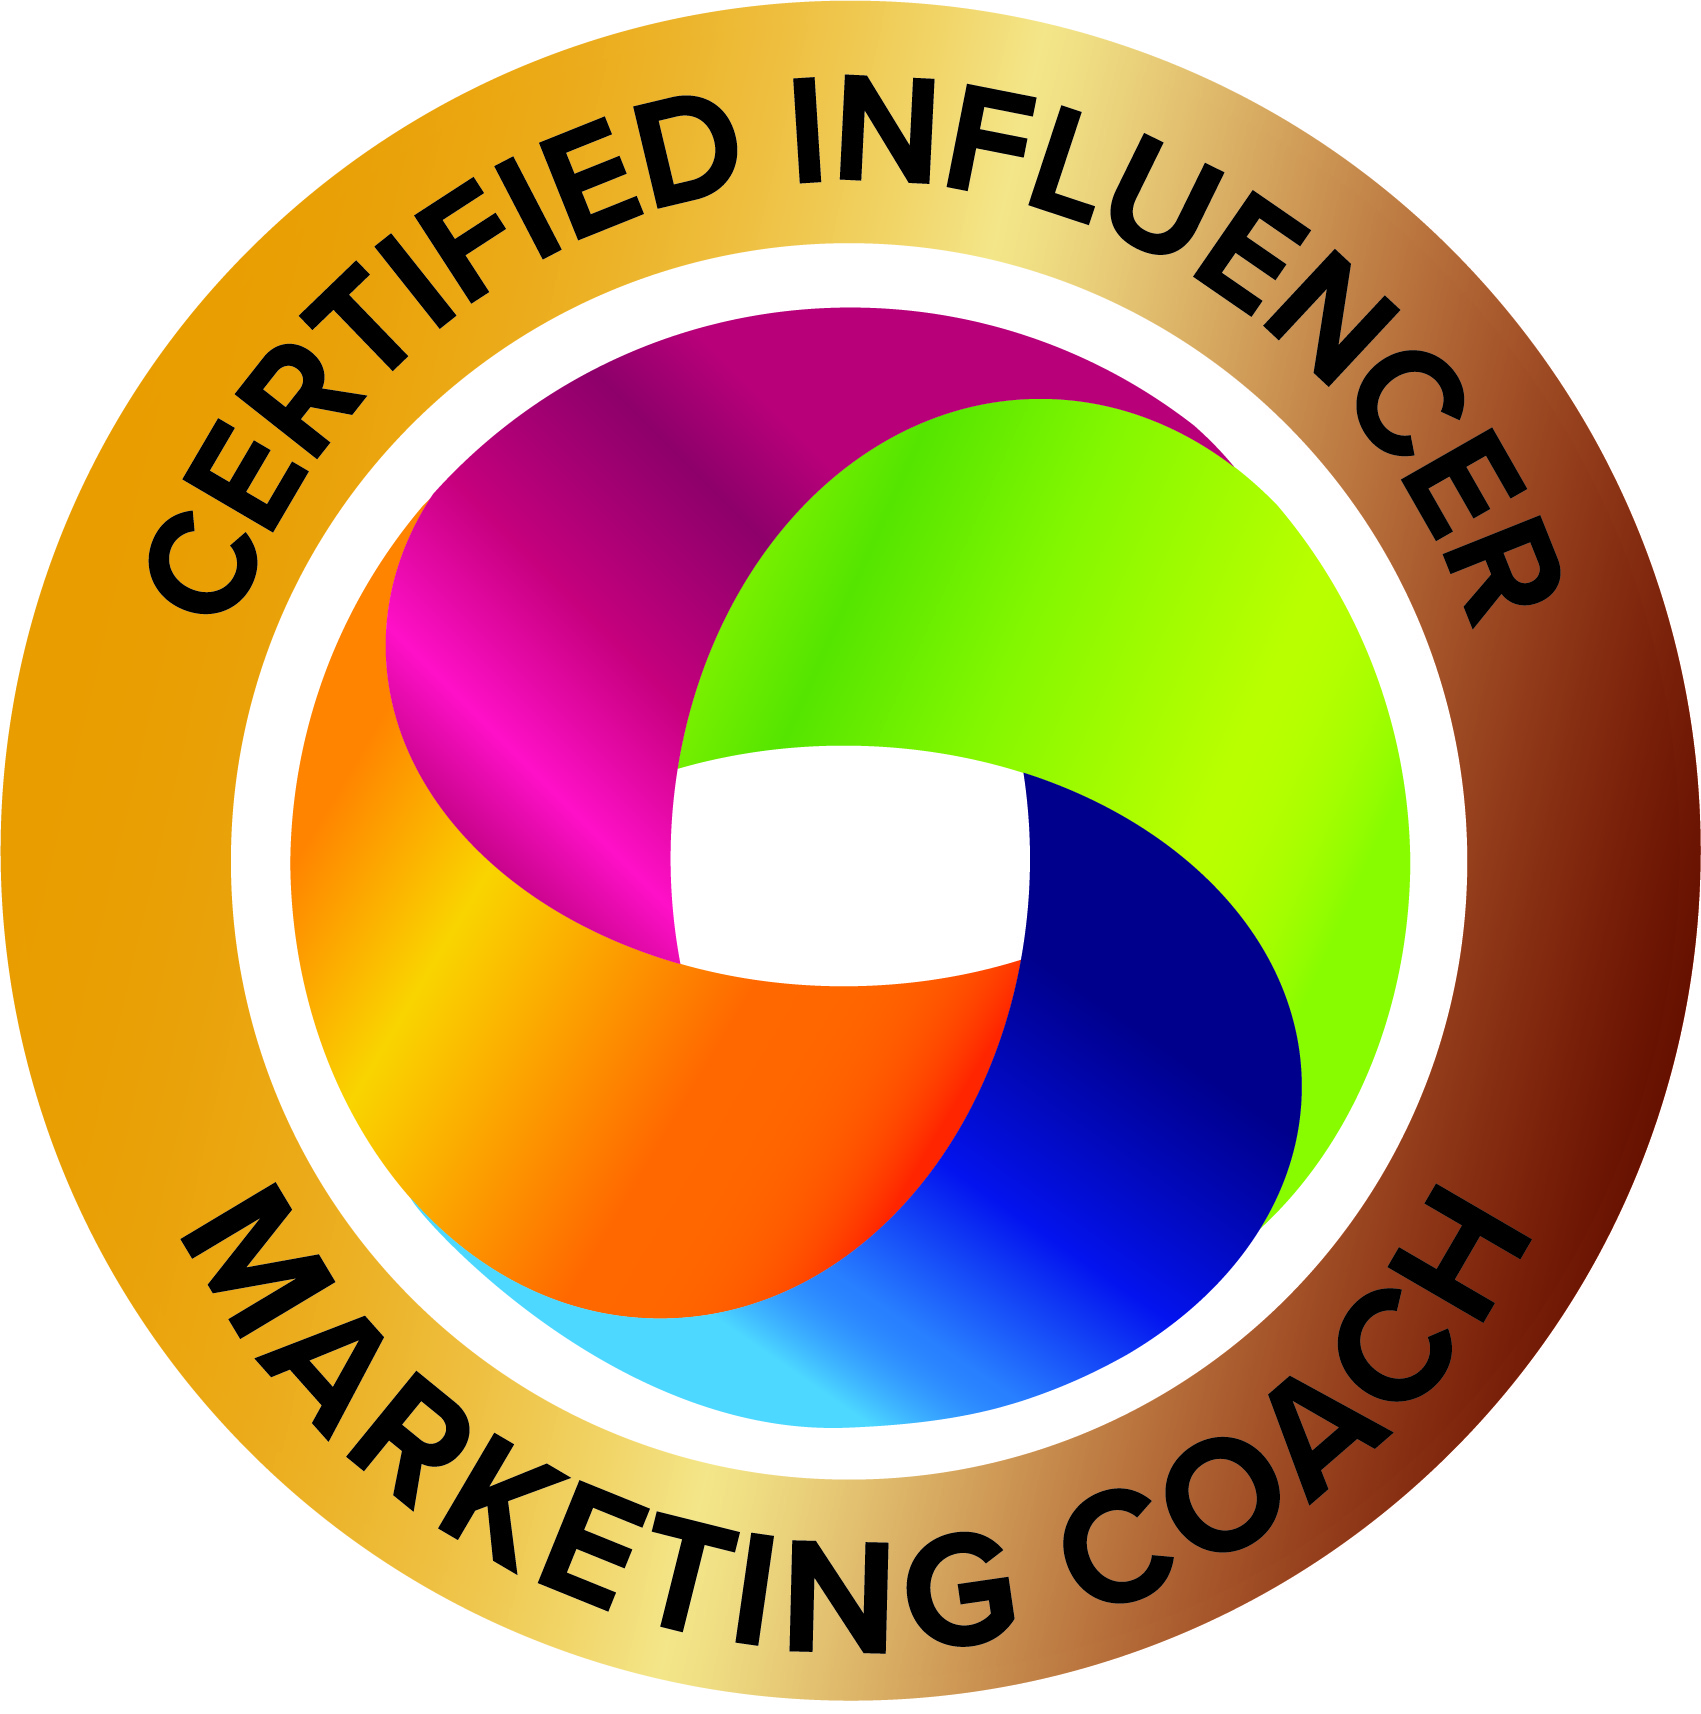 Cerified Influencer Marketing Coach